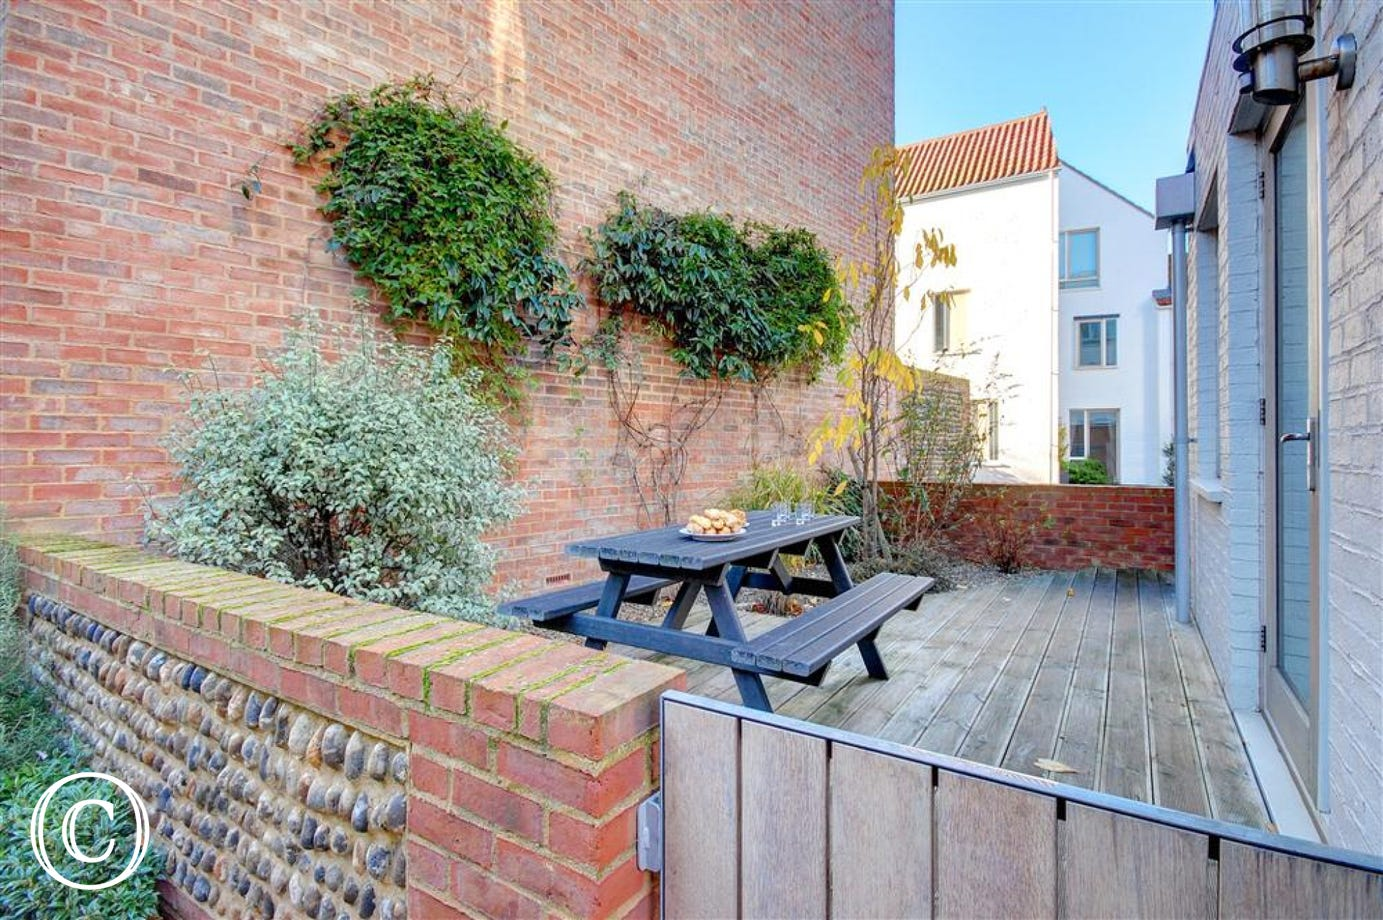 Enjoy an afternoon tea at the picnic table in the Southwold sun in this courtyard garden at Turnstone's.